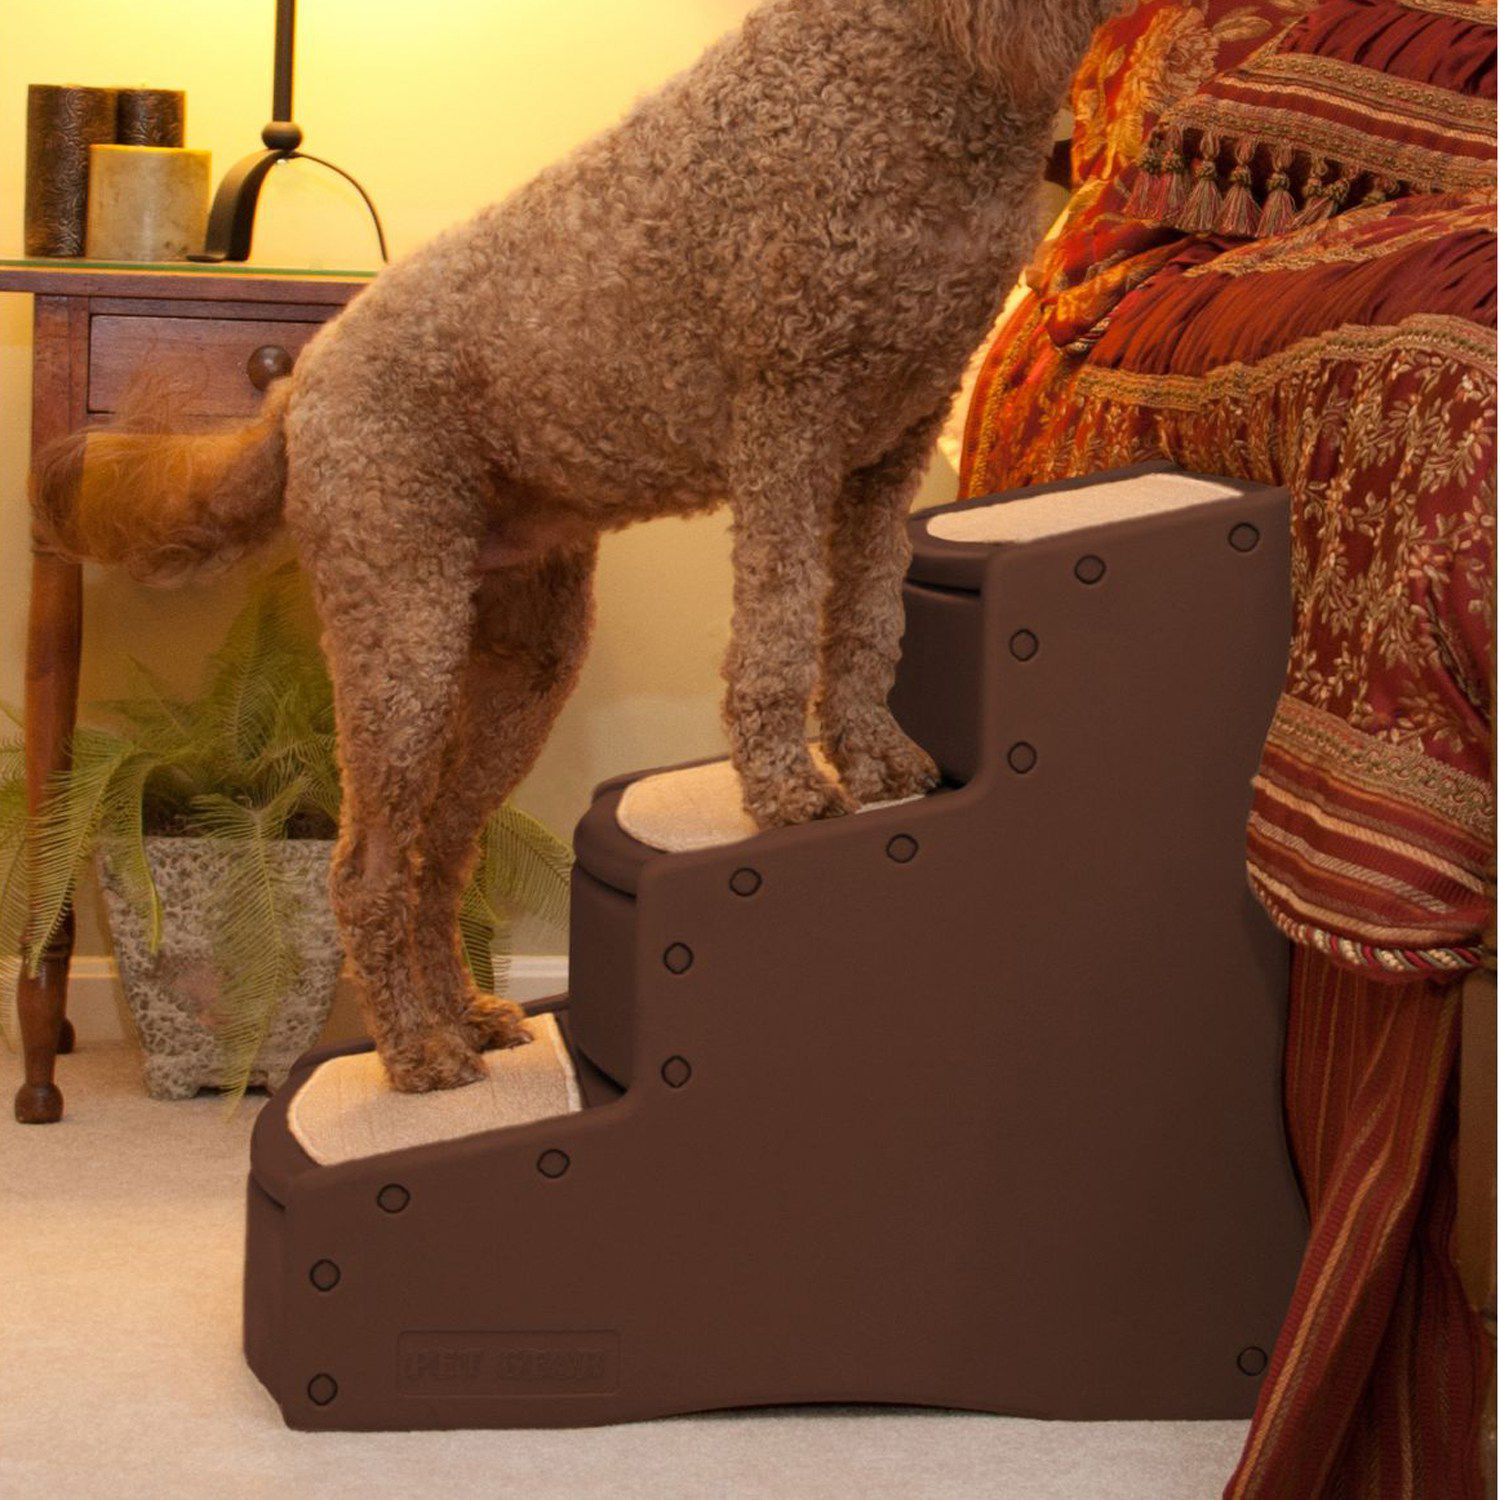 Pet Gear Easy Step III Extra Wide Pet Stair